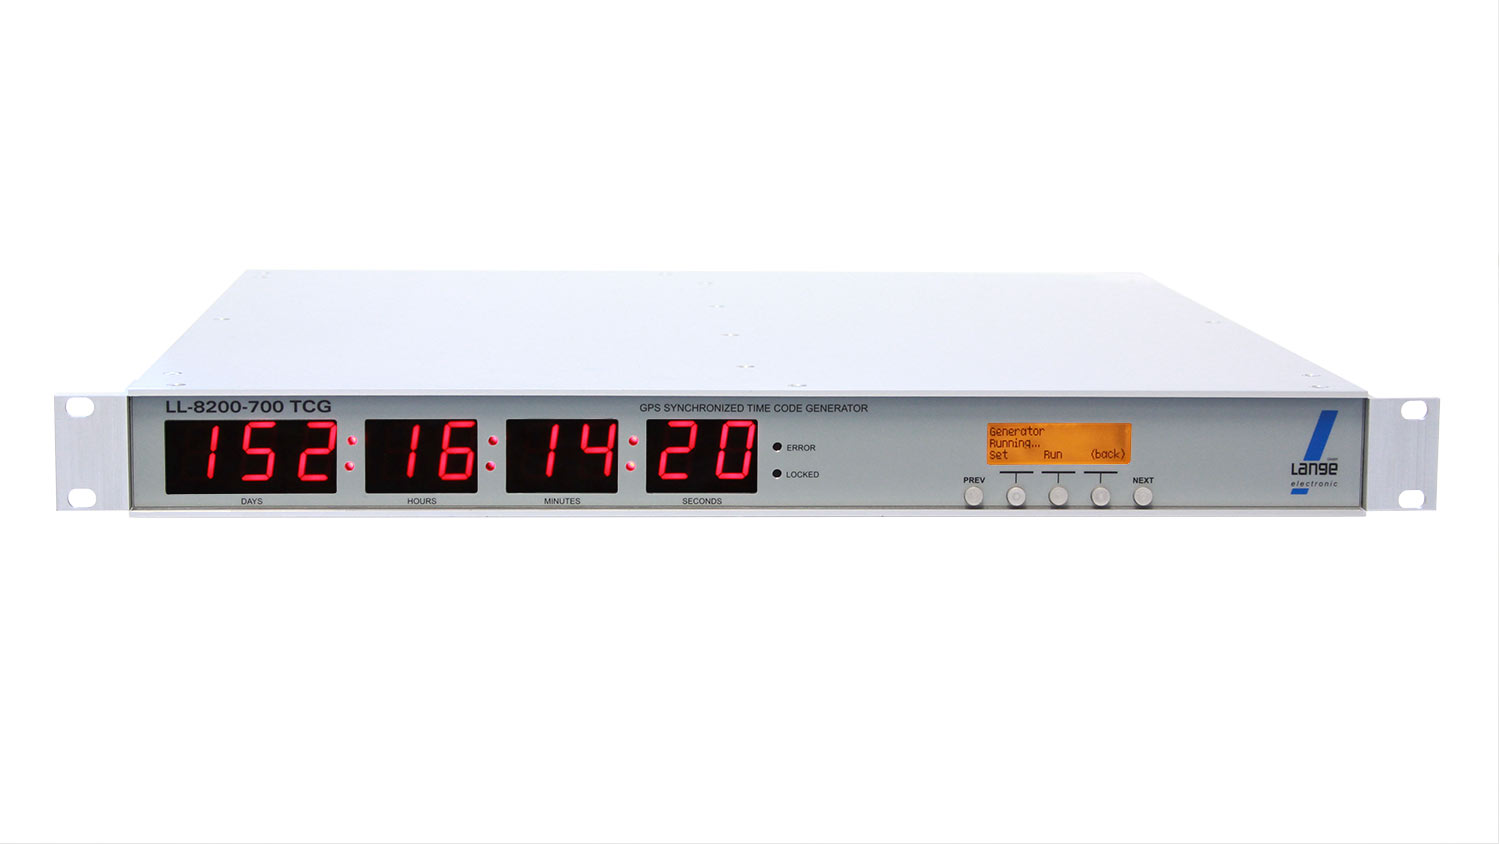 LL-8200 Time Code System